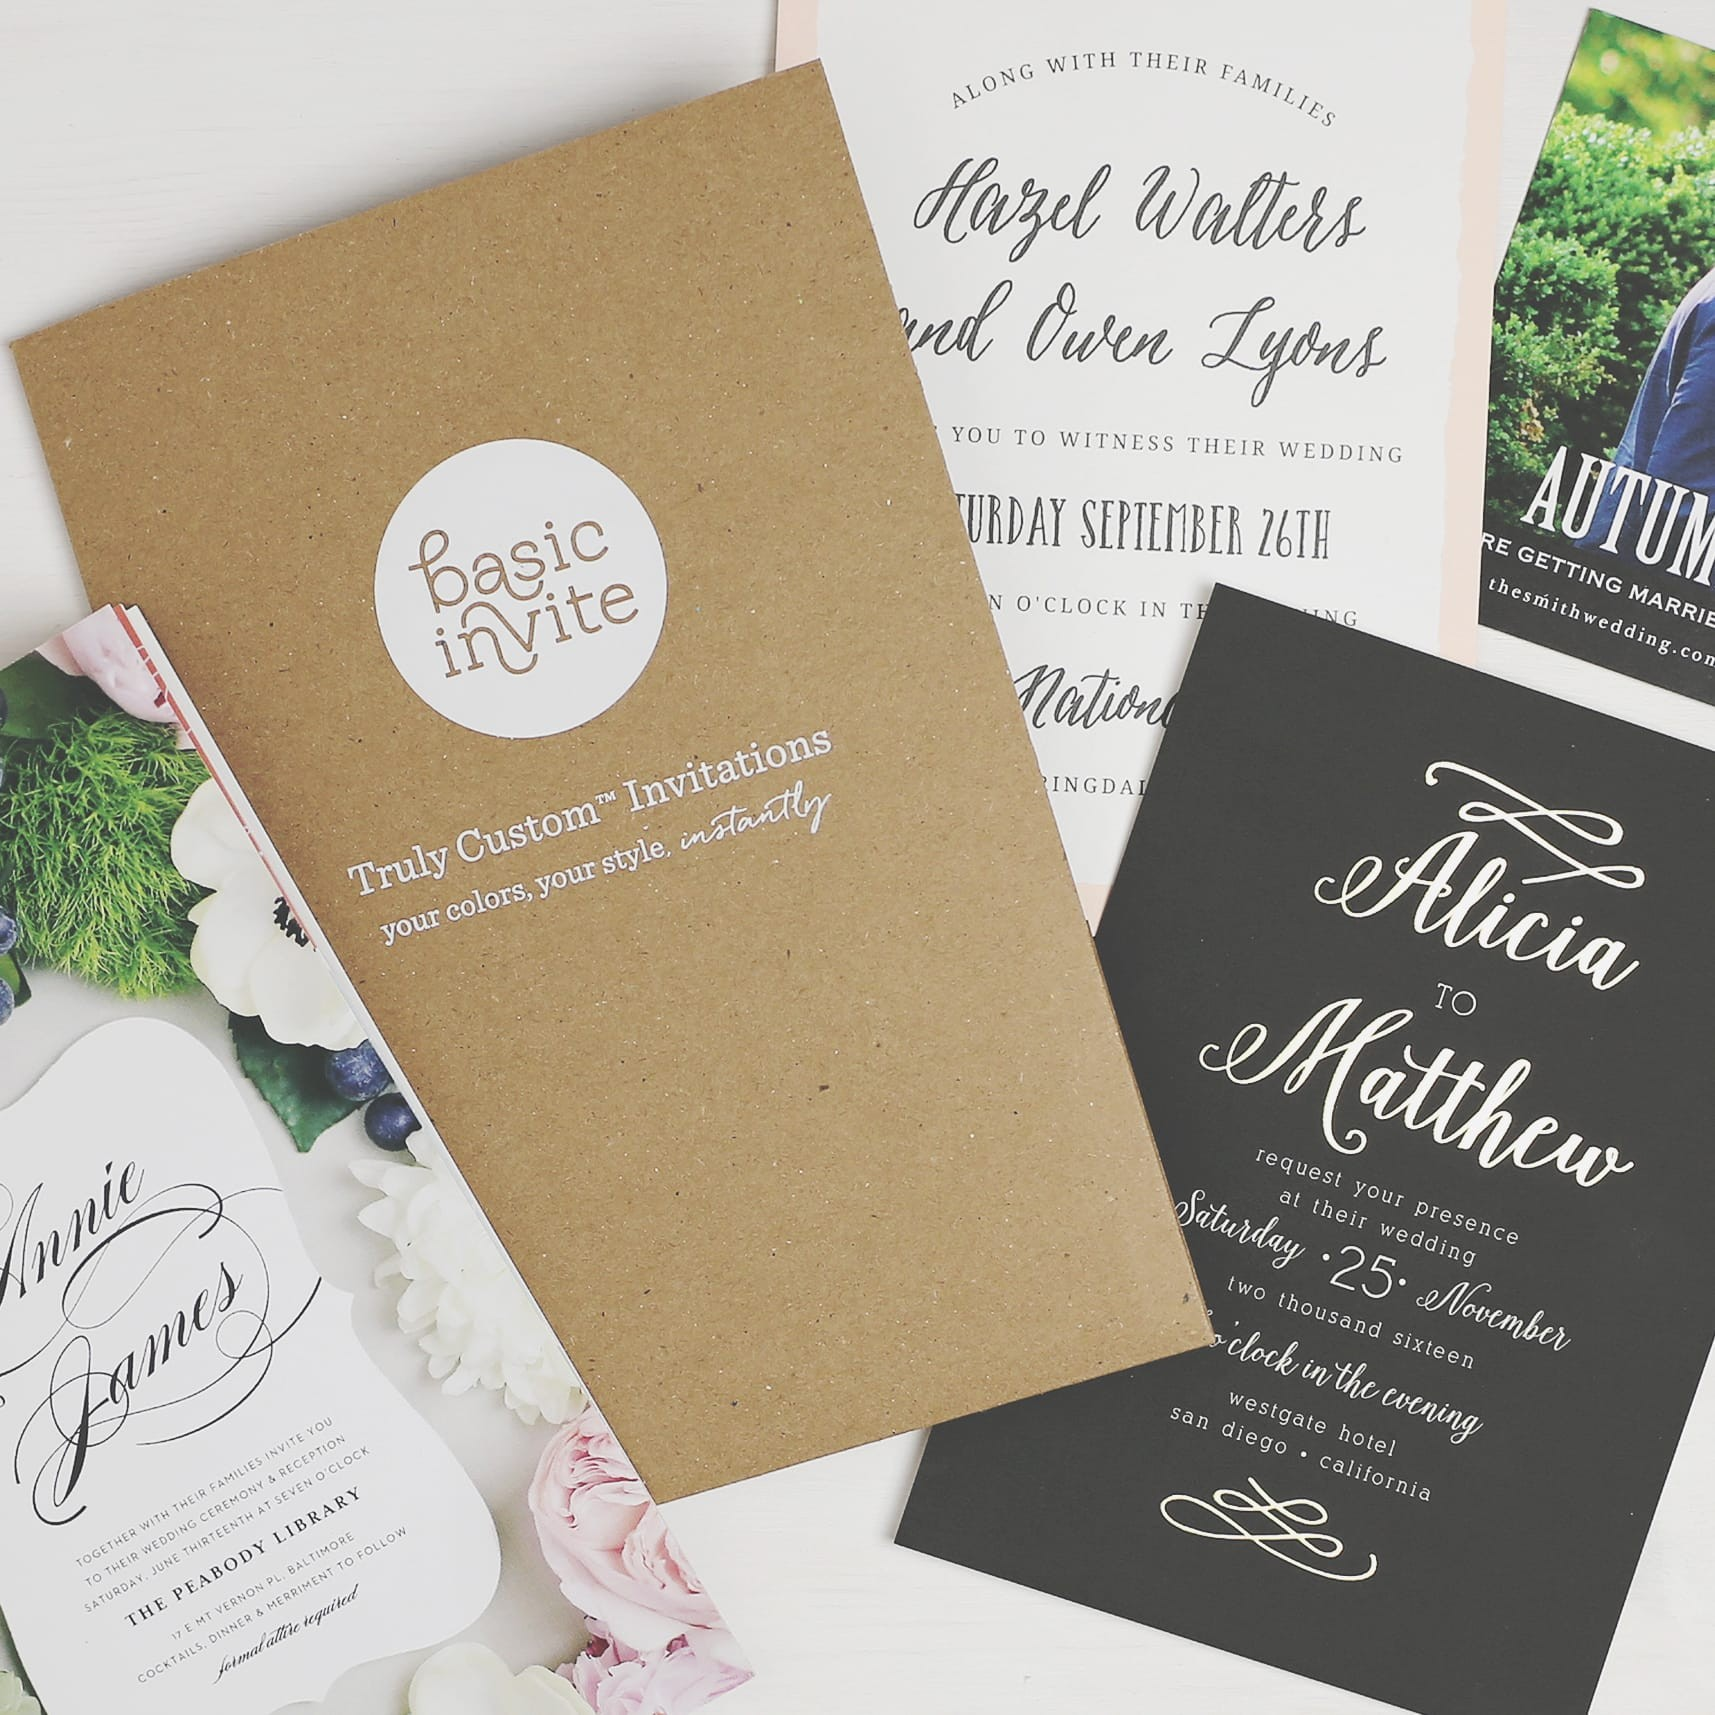 Partner Wedding Sample Kit